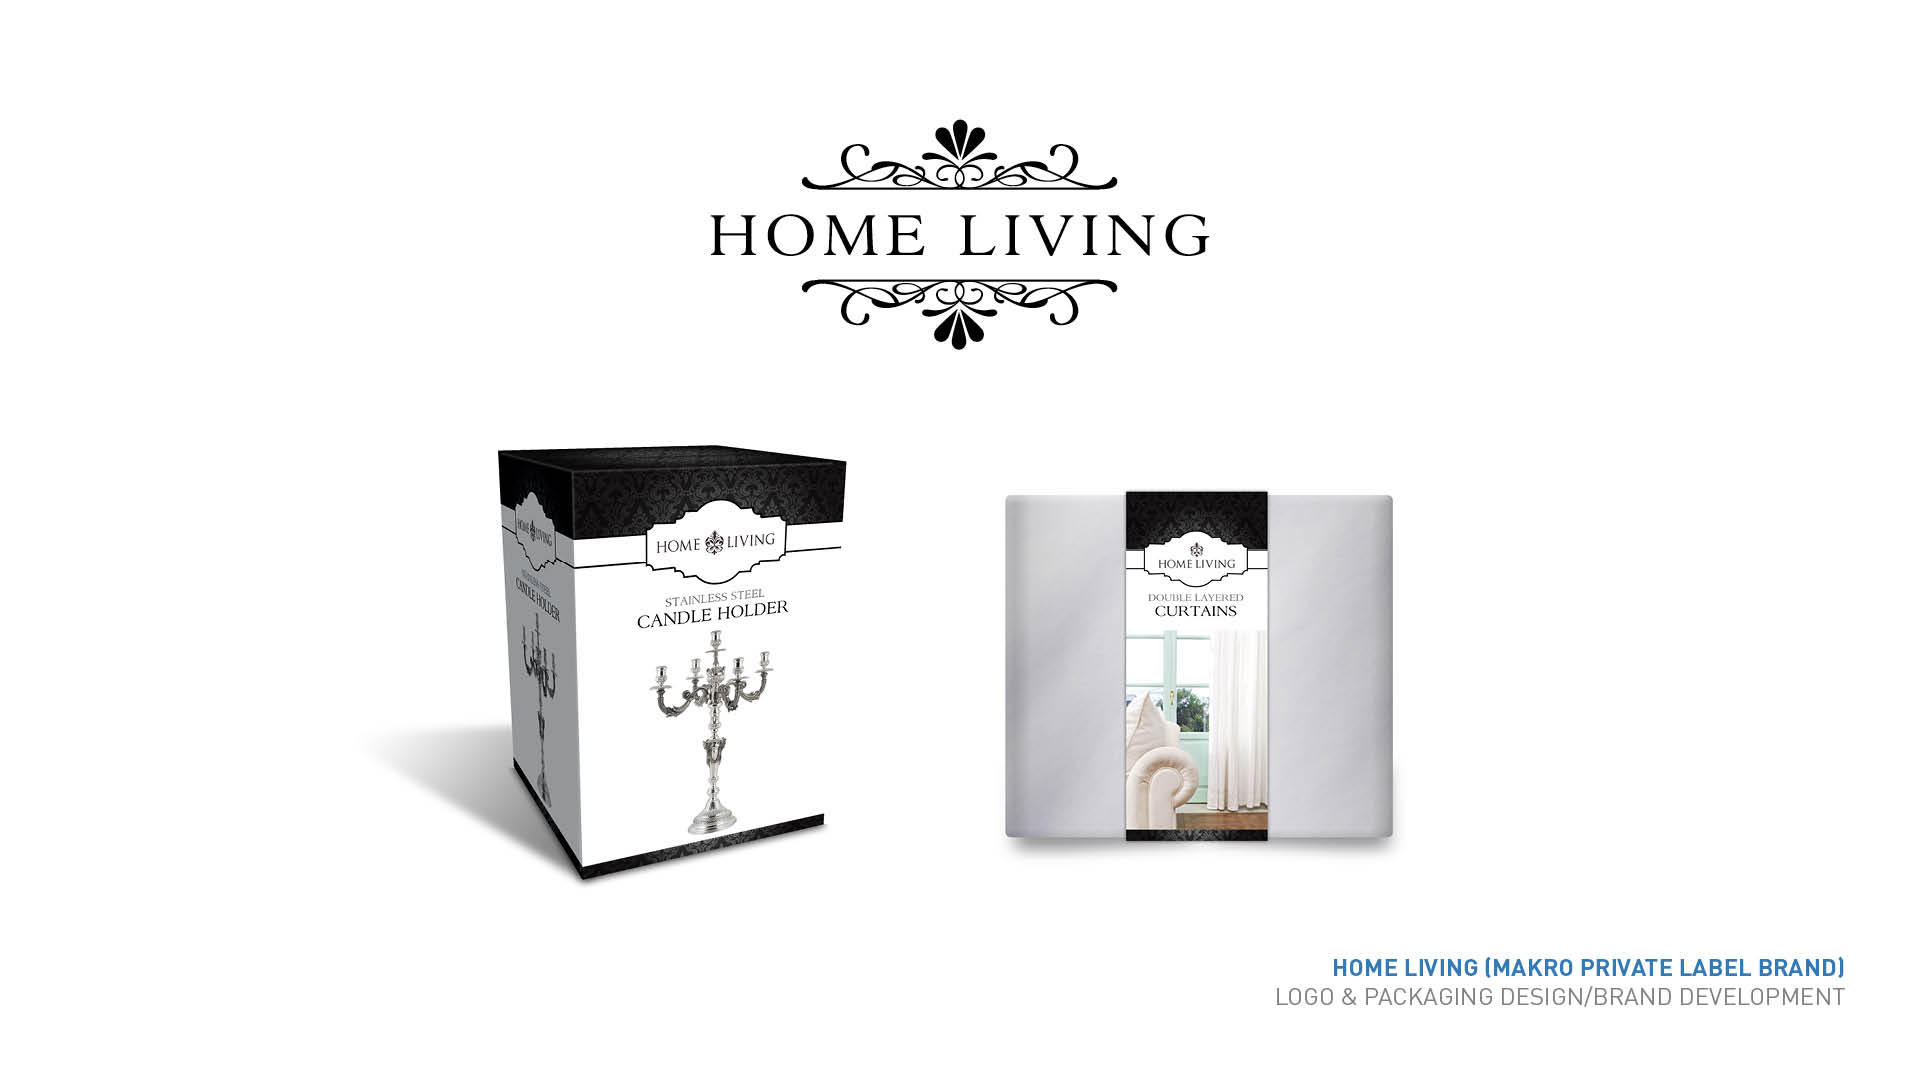 Home Living packaging and logo design